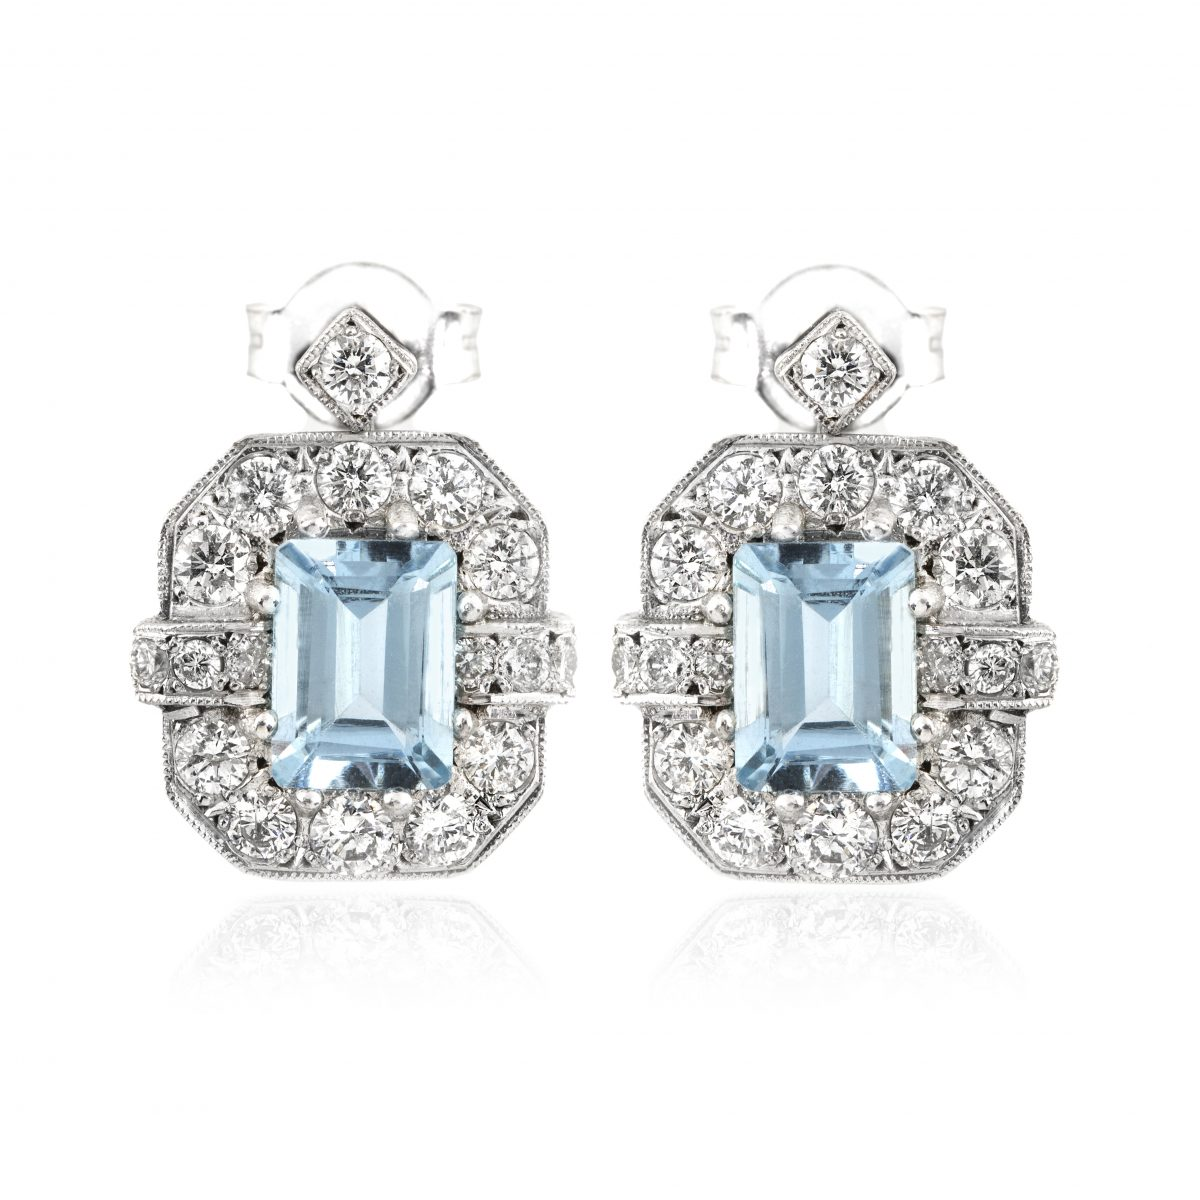 f8673f33085e2 Vintage Art Deco Style 18ct White Gold Aquamarine and DIamond Earrings A  2.30ct D 0.75ct G SI